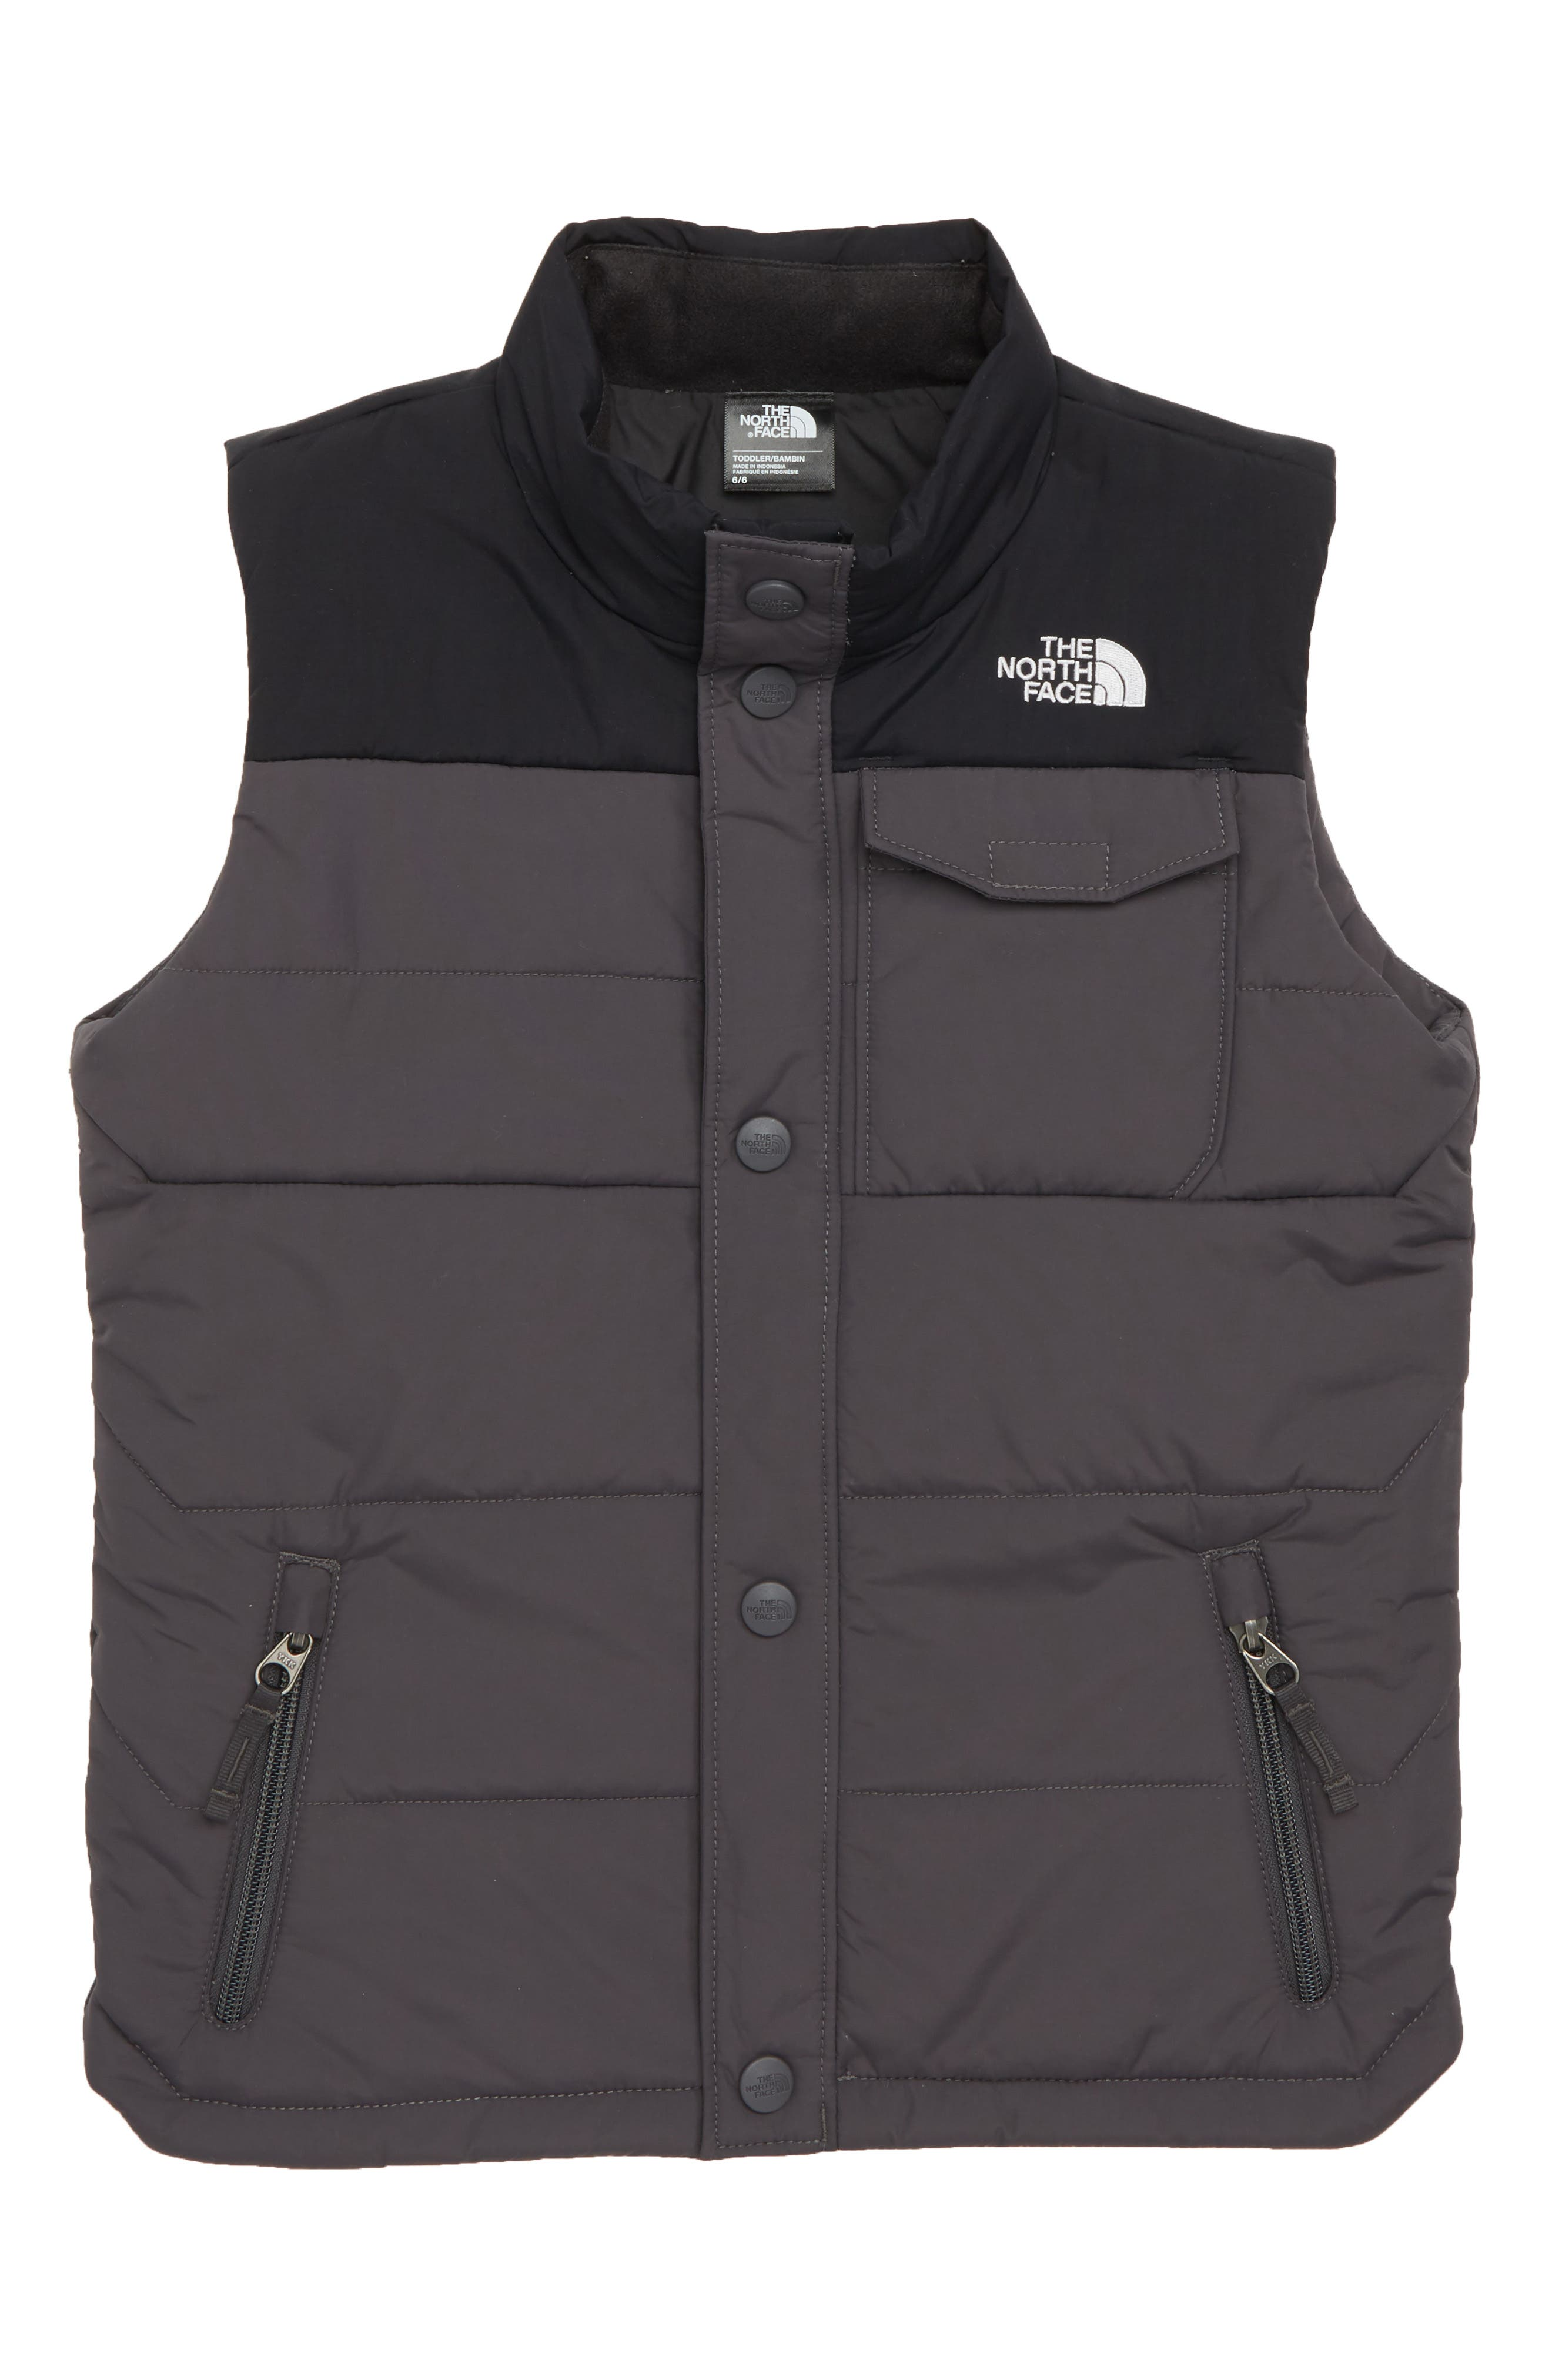 Toddler Boys The North Face Patricks Point Vest Size 3T  Grey